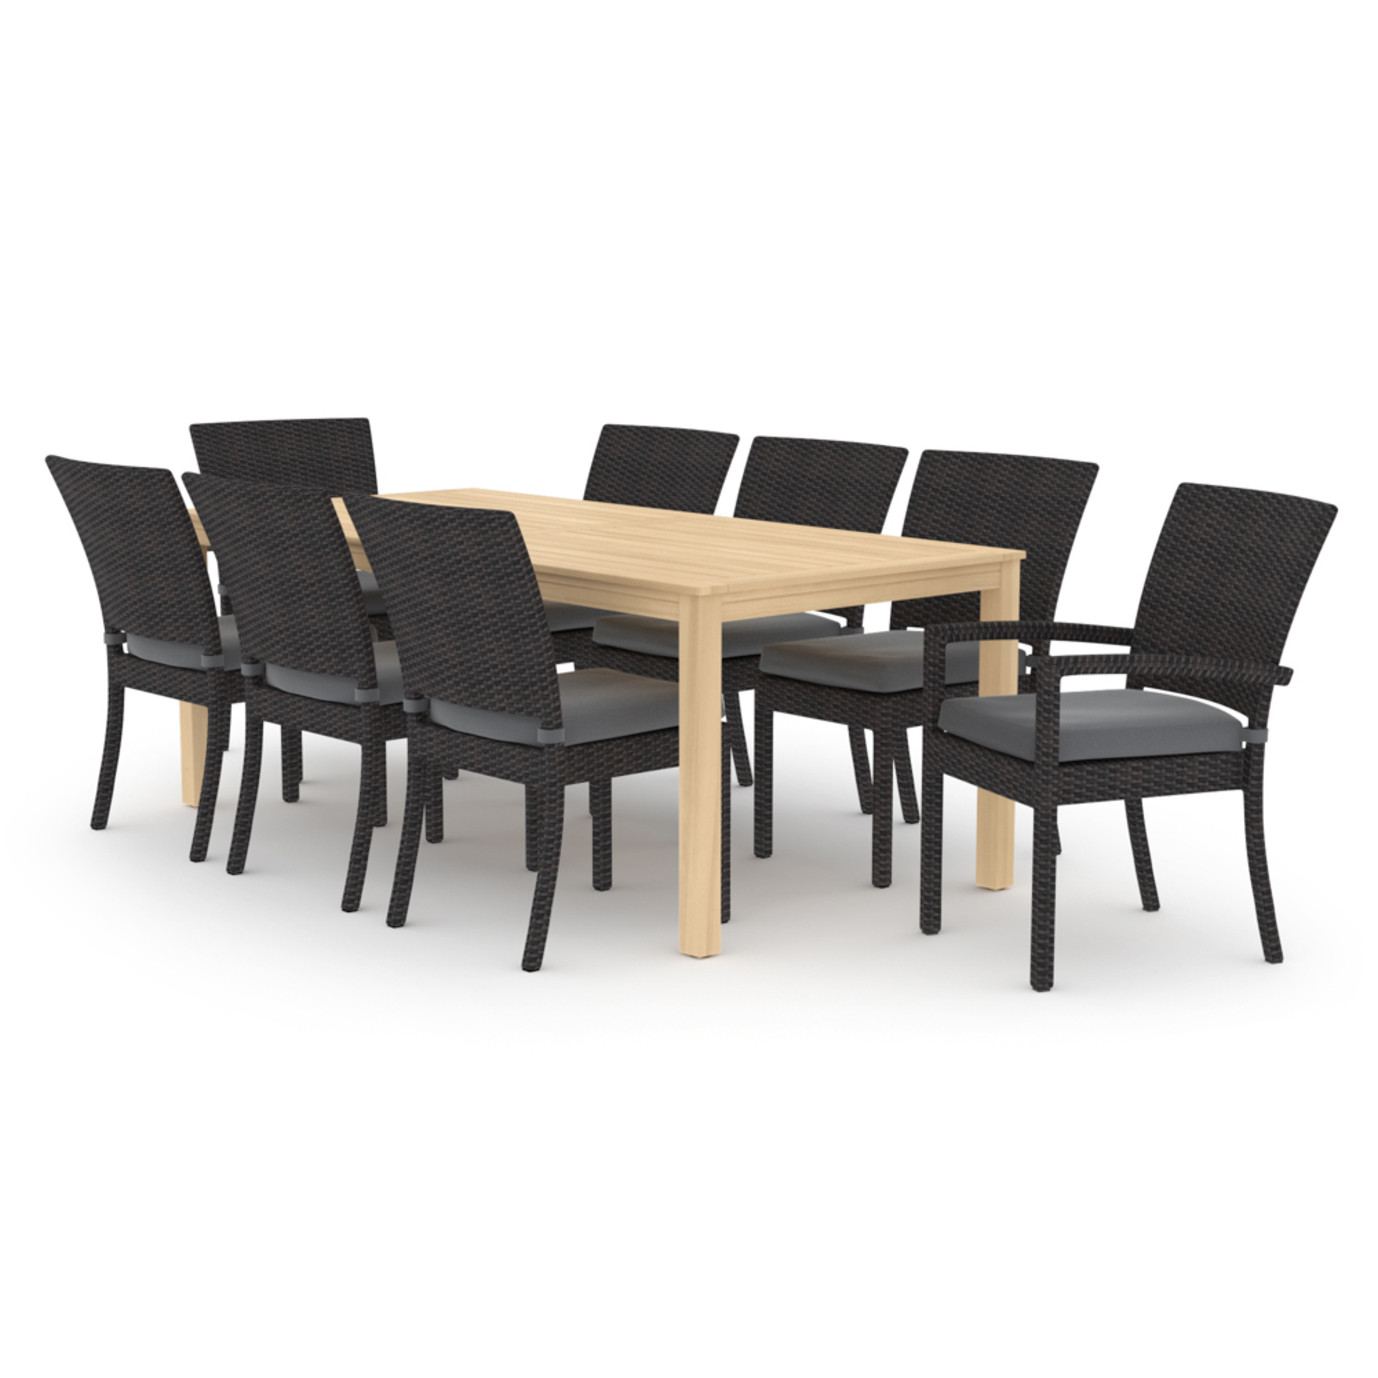 Deco™ Wood 9pc Dining Set - Charcoal Gray